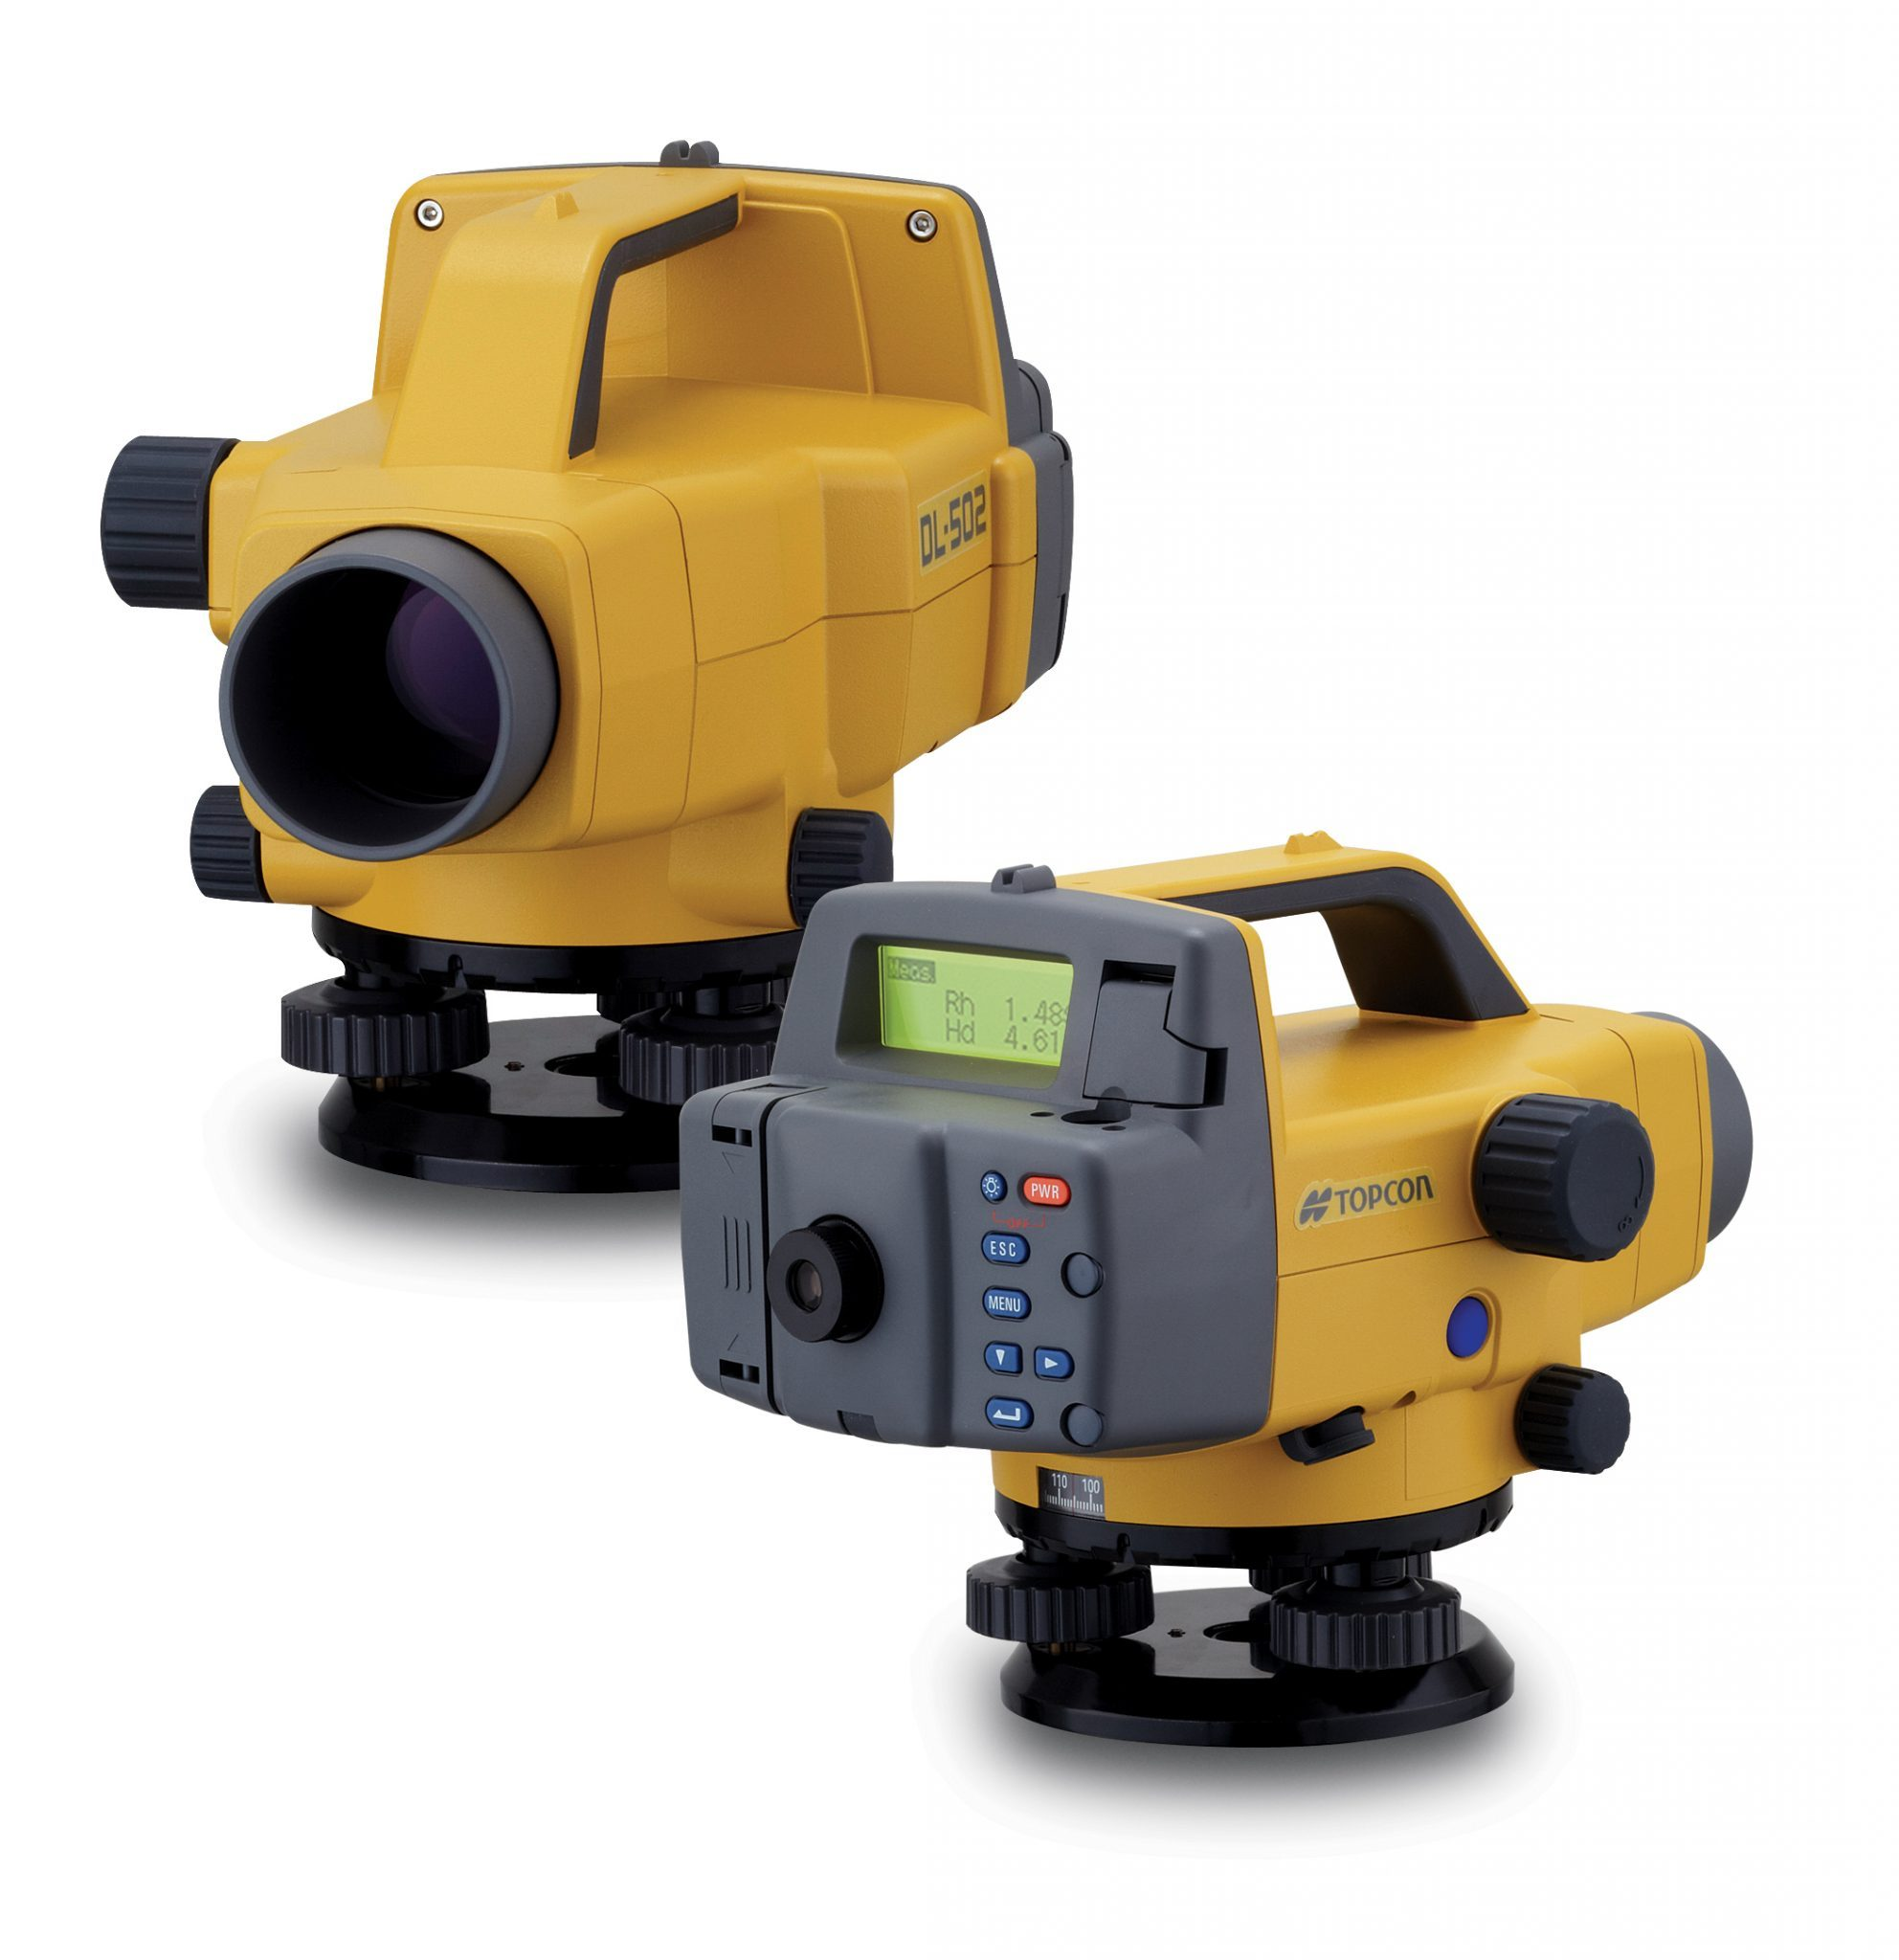 Jual Digital Level Topcon Dl-500 Series